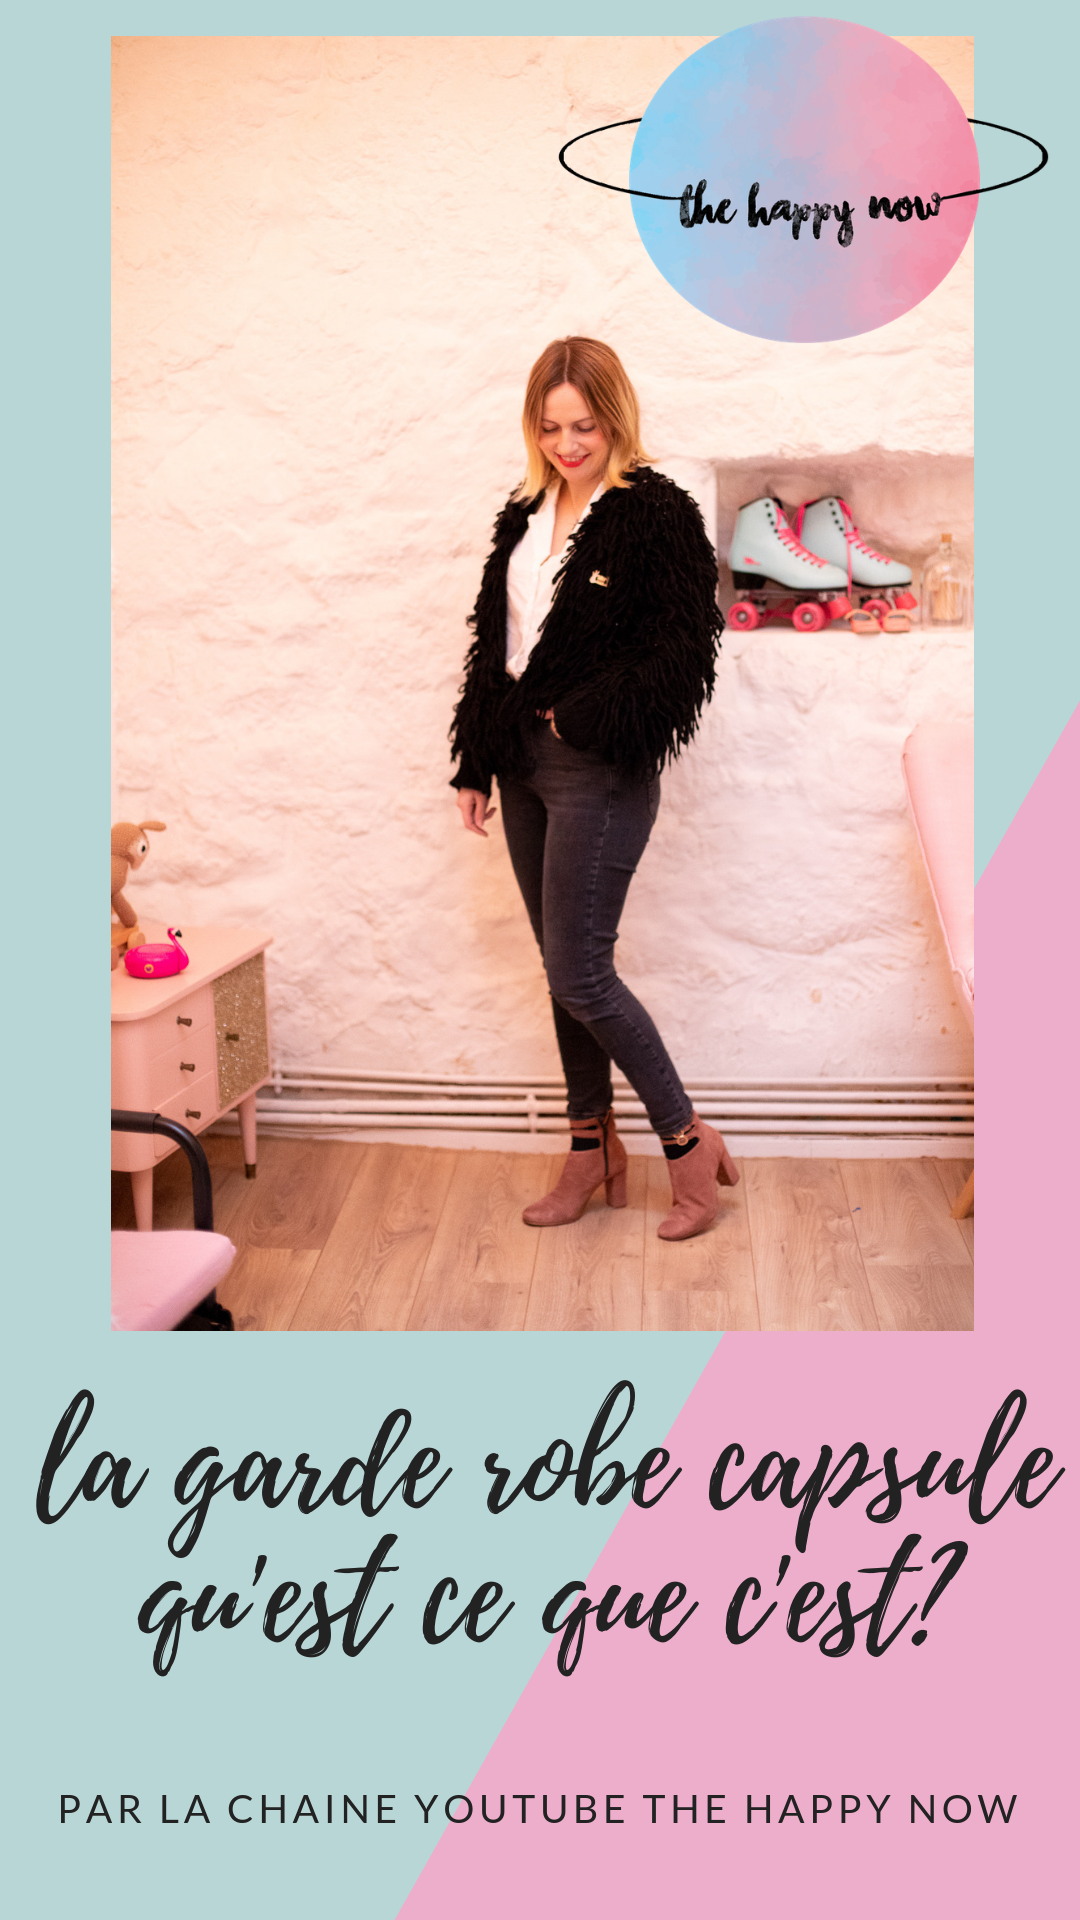 garde robe capsule ; qu'est ce que c'est ? the happy now